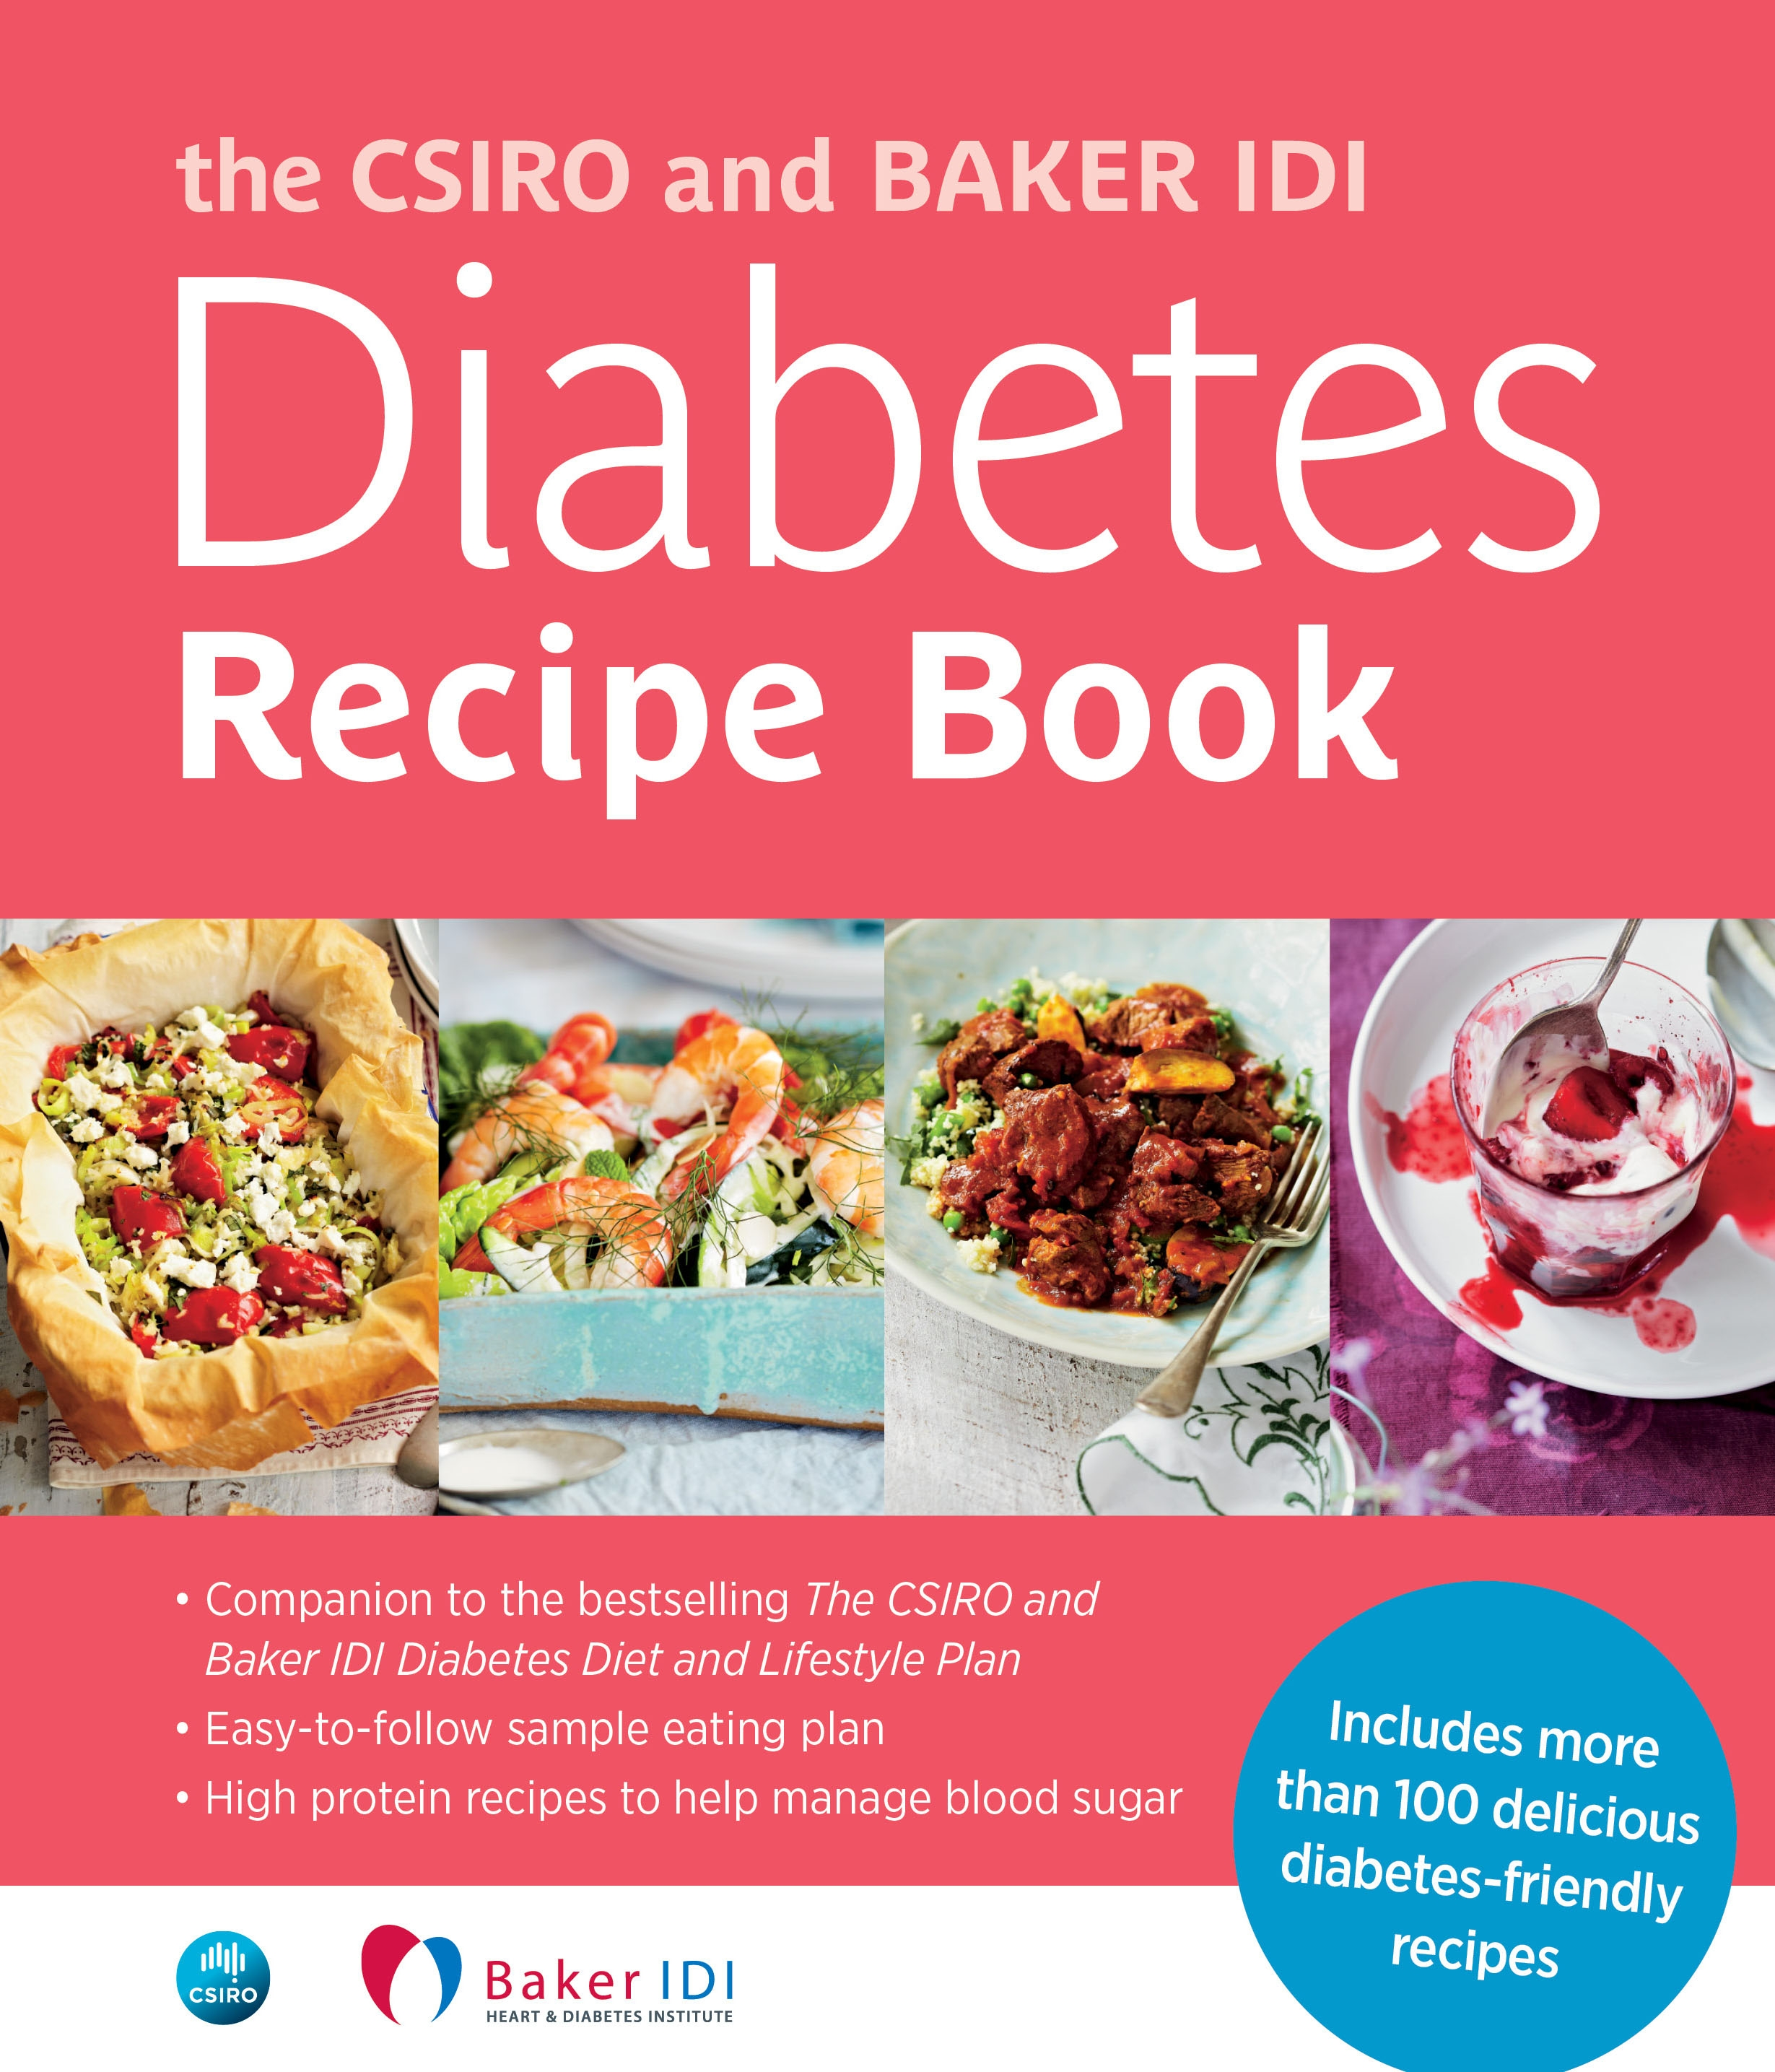 The csiro and baker idi diabetes recipe book penguin books australia the csiro and baker idi diabetes recipe book food drink forumfinder Image collections